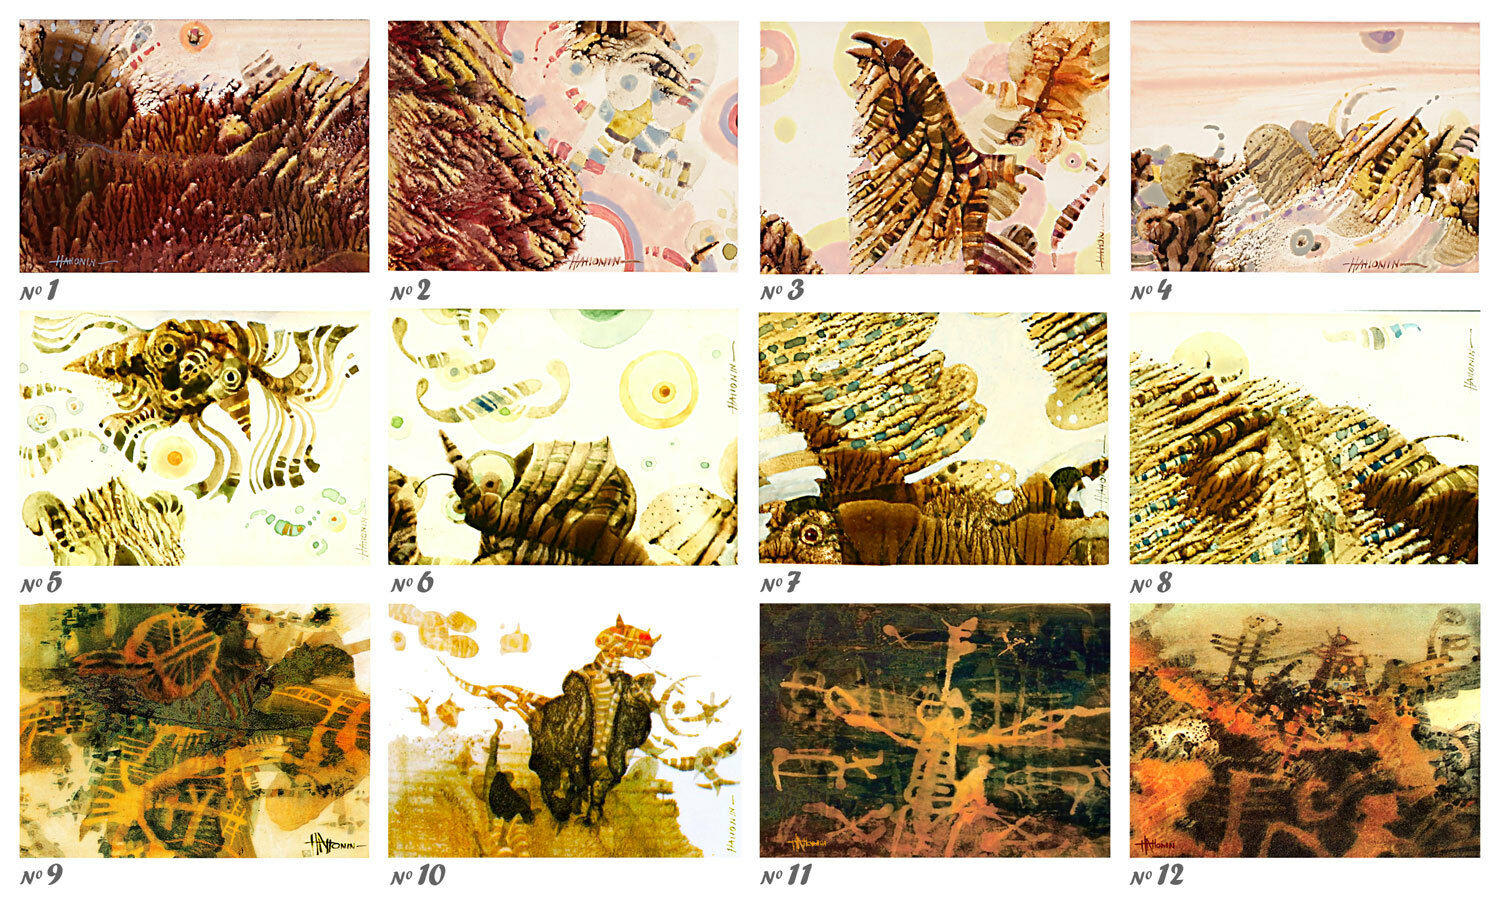 12 Different Owls ACEO LE Prints of Original Paintings by Sergej Hahonin